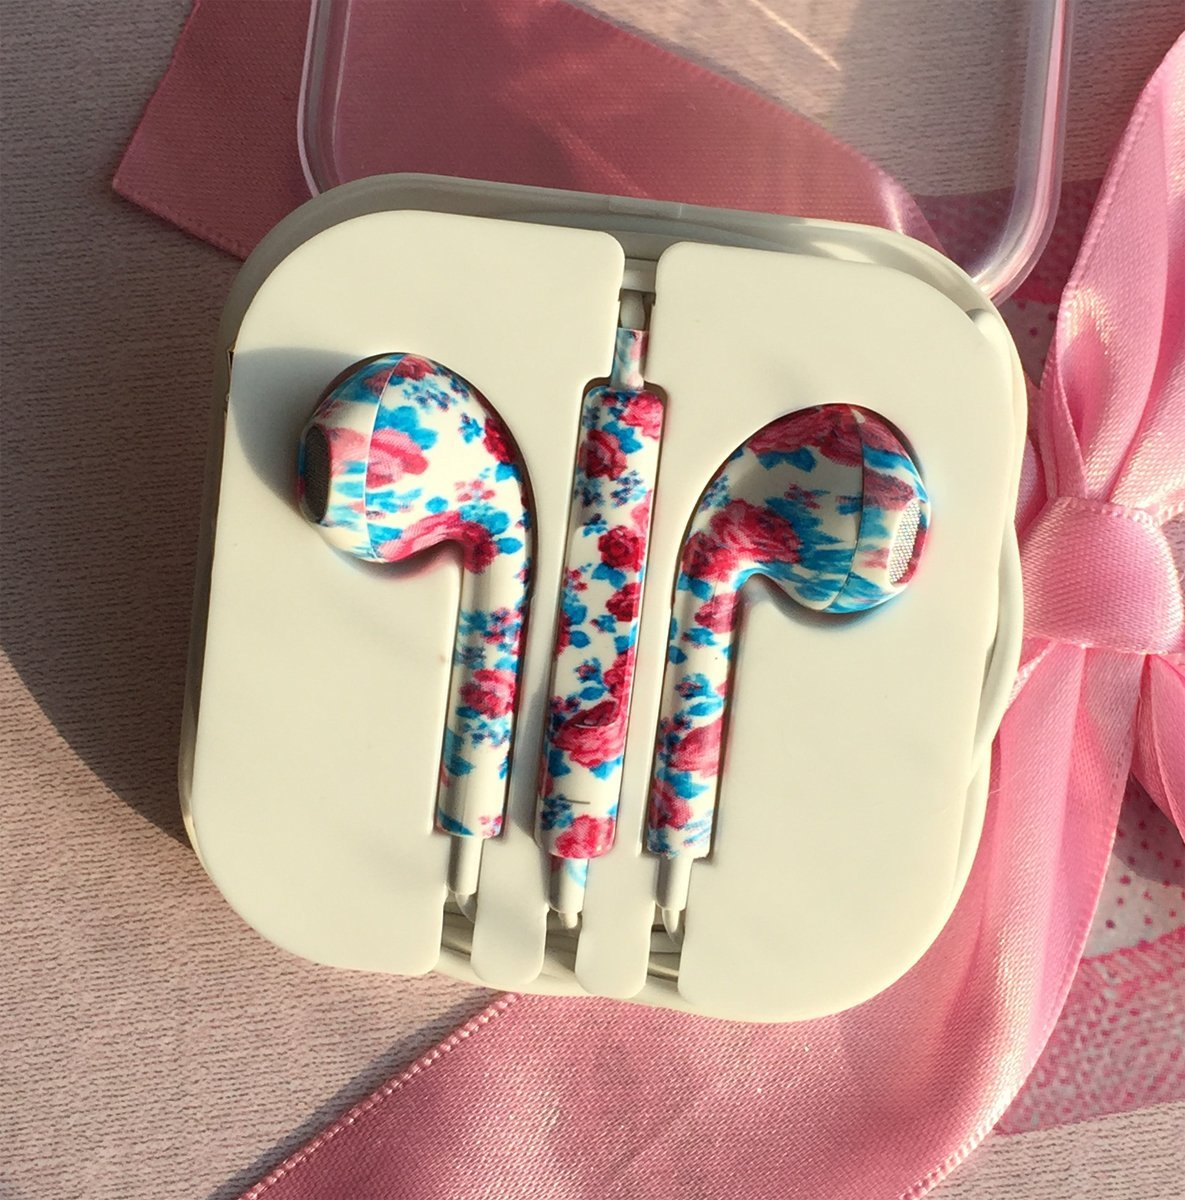 Amazon.com: Crazy Panda New Special Cool Design Cute Lovely Painting Earbuds with Mic and Volume Control Stereo Quality Earphones (flowers ocean): Cell Phones & Accessories